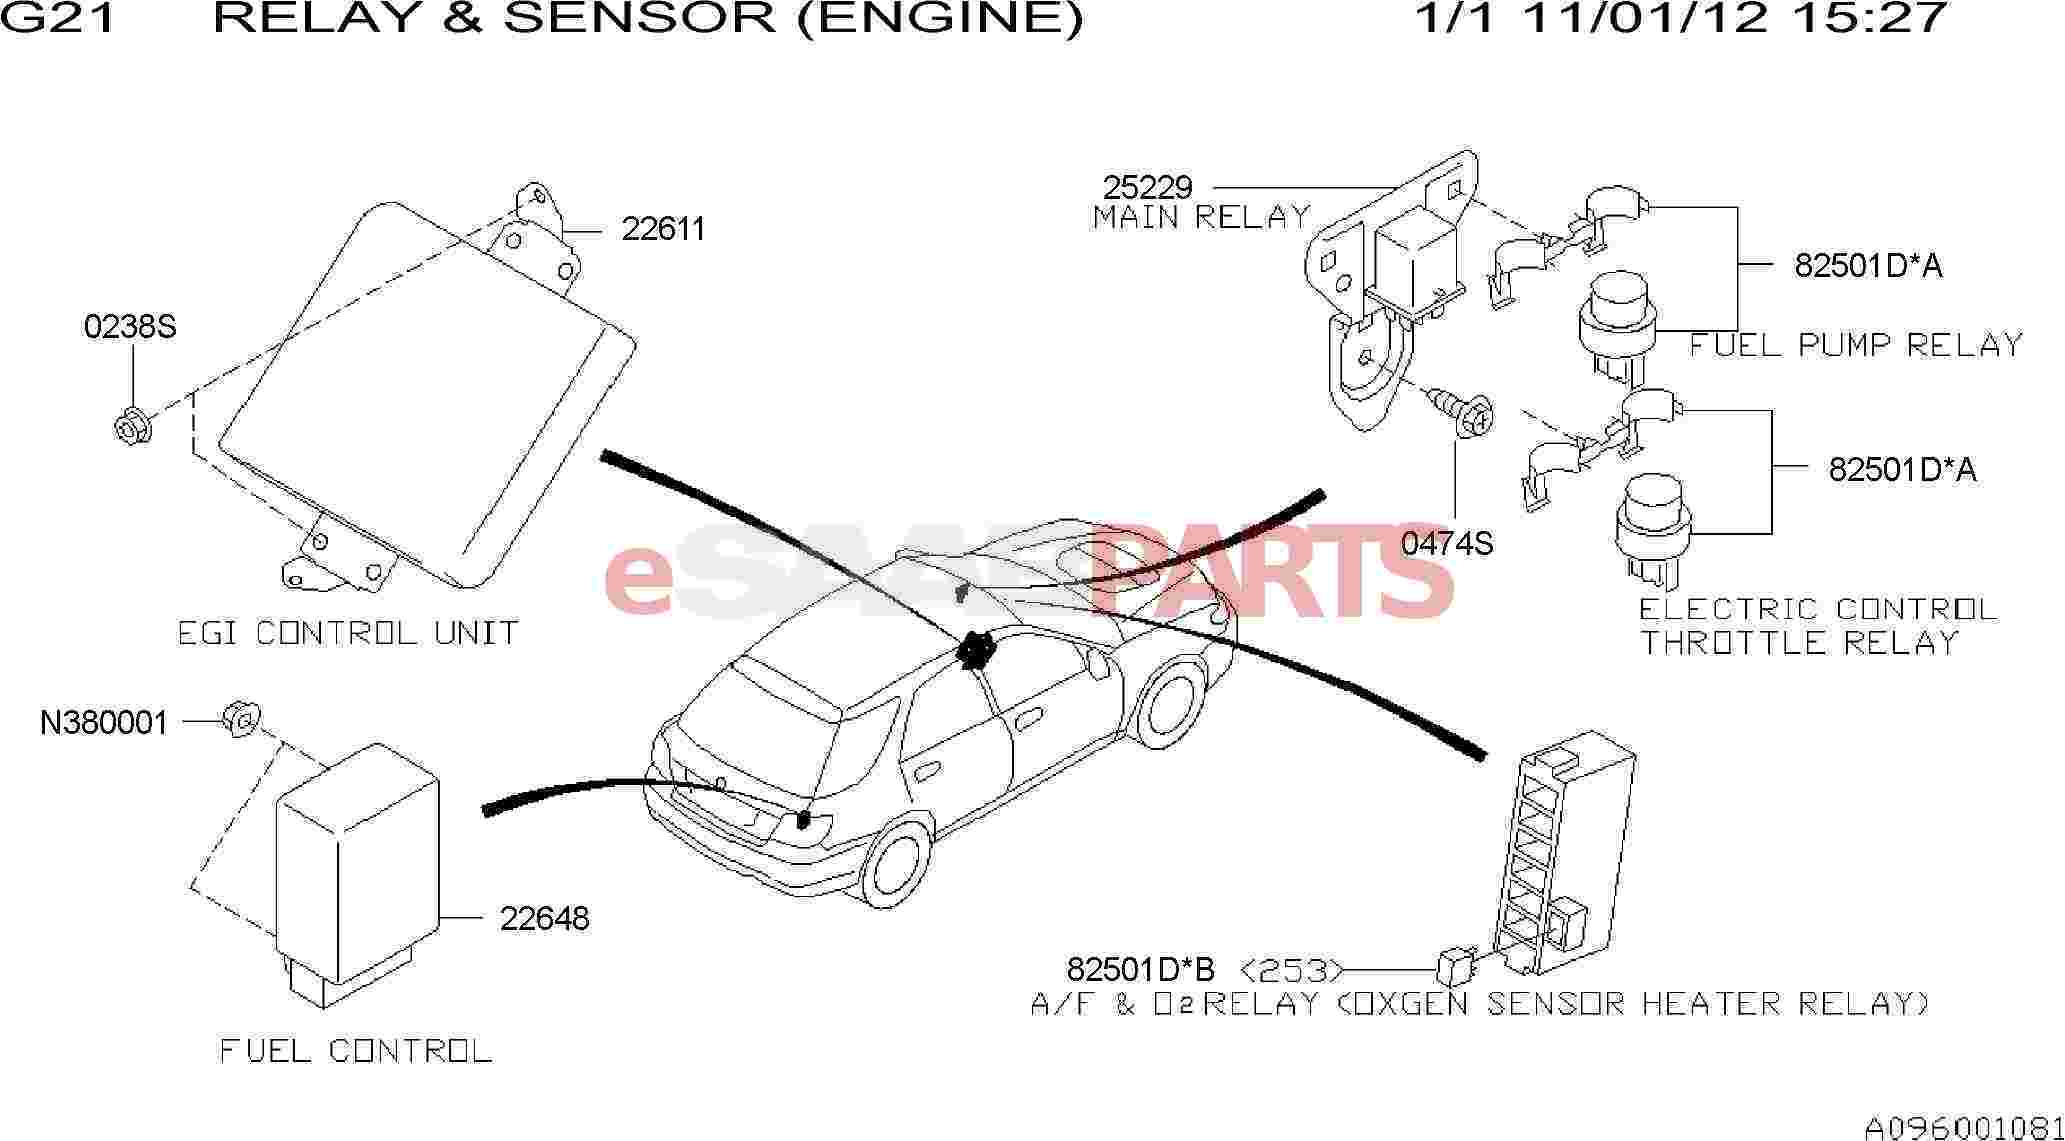 32008611 Saab Relay Genuine Parts From 92x Fuse Box Diagram Image 82501d B